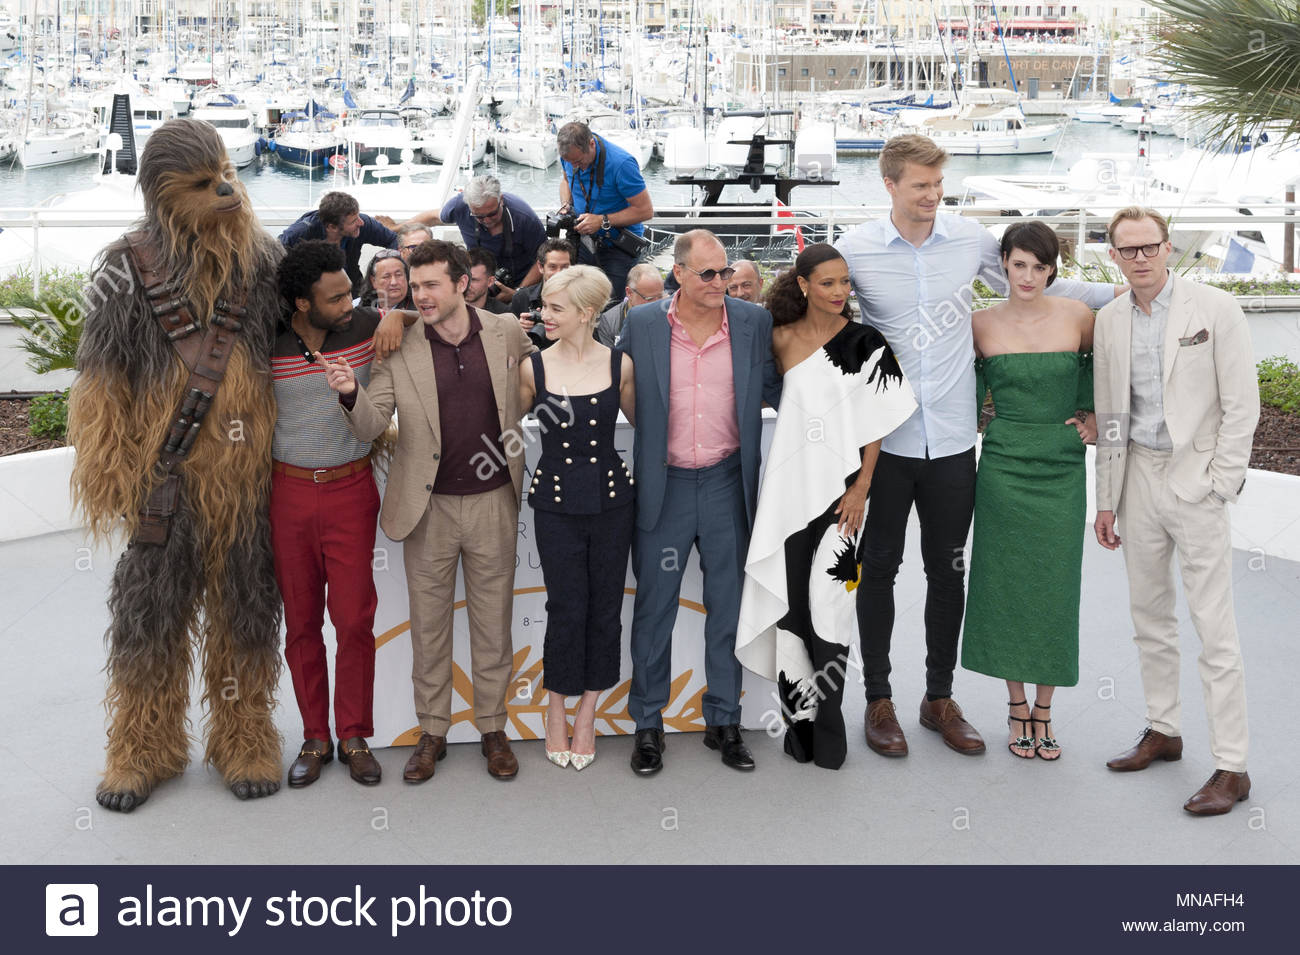 Cannes, France. 15th May, 2018. (FromL) Chewbacca, US actor Donald Glover, US actor Alden Ehrenreich, British actress Emilia Clarke, US actor Woody Harrelson, British actress Thandie Newton, Finnish actor Joonas Suotamo, British actress Phoebe Waller-Bridge and British actor Paul Bettany pose on May 15, 2018 during a photocall for the film 'Solo : A Star Wars Story' at the 71st edition of the Cannes Film Festival in Cannes, southern France. (c) copyright Credit: CrowdSpark/Alamy Live News - Stock Image